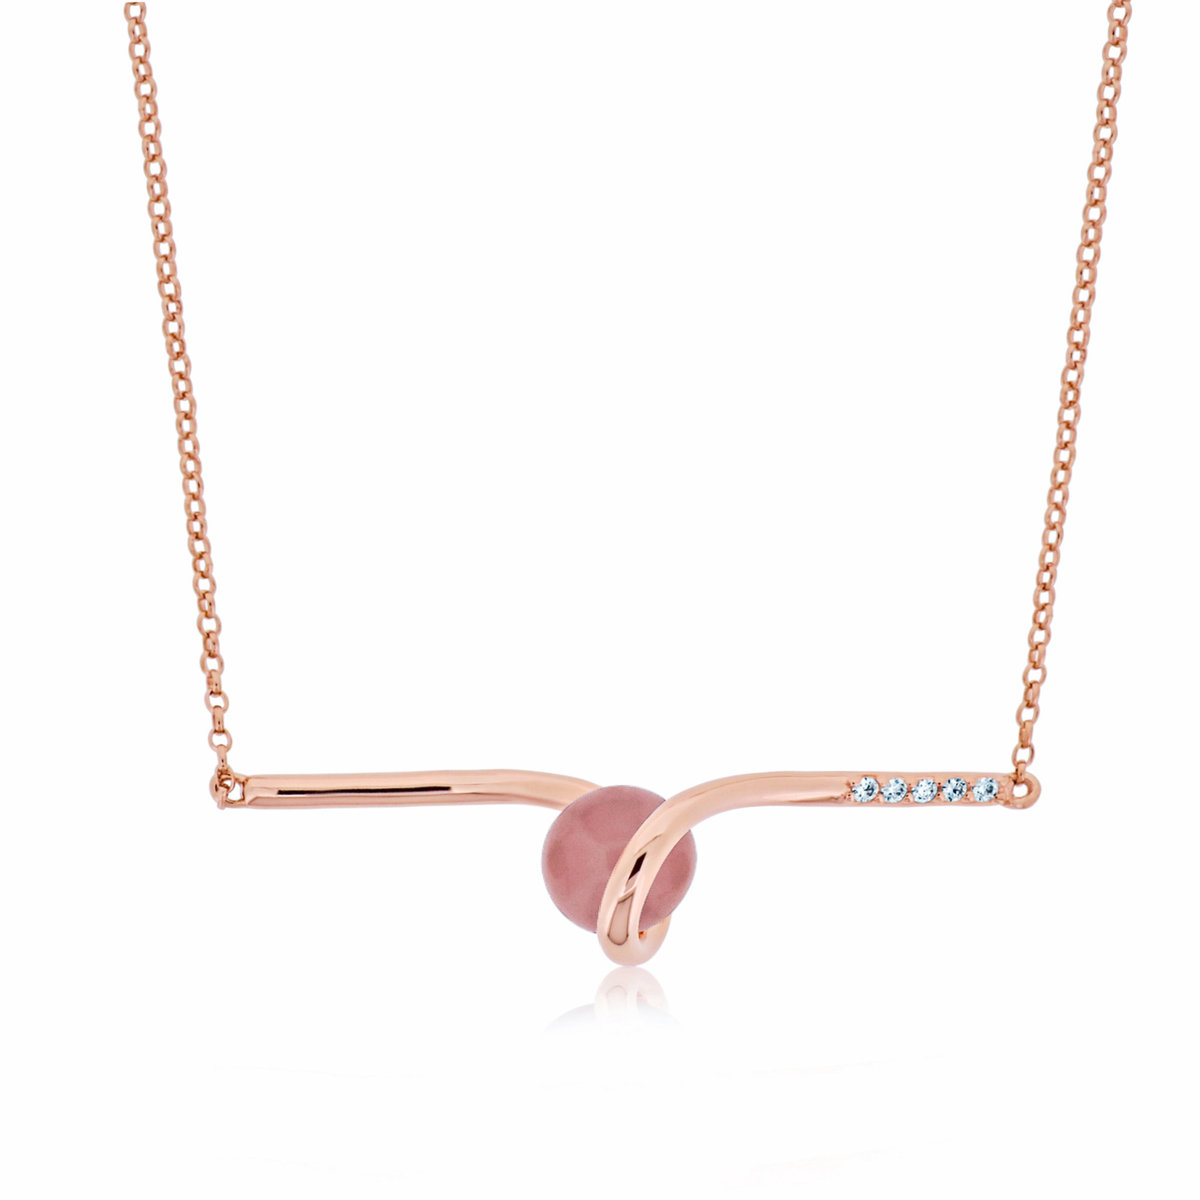 18K Rose Gold Vermeil on Sterling Silver Natural Guava Quartz Saturn Italian Necklace